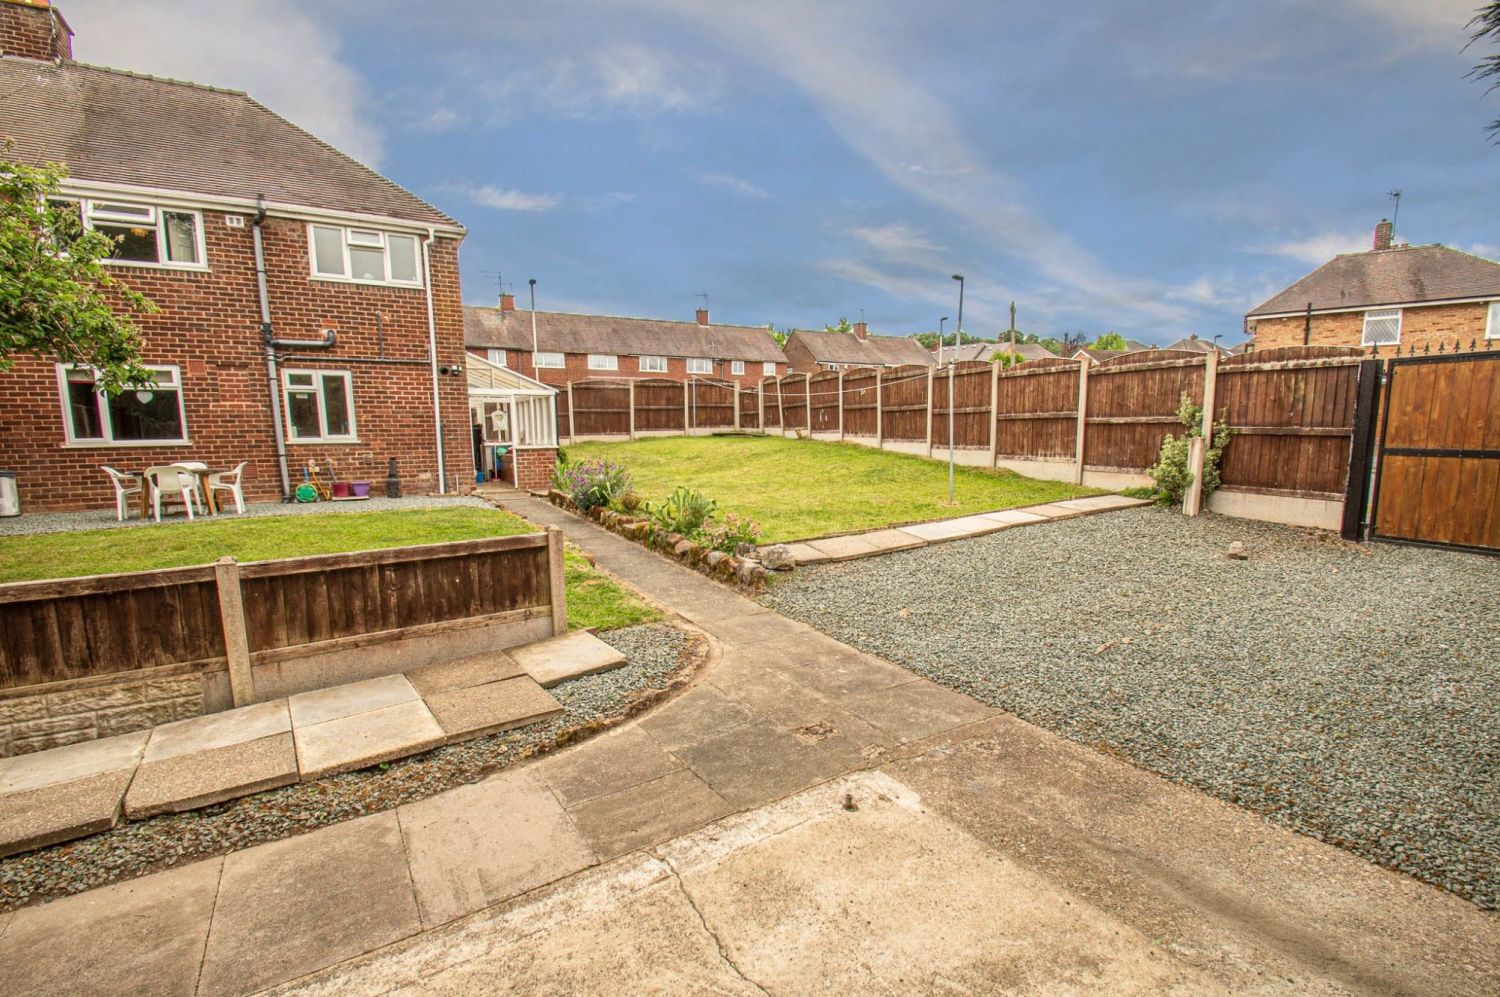 3 bed semi-detached for sale in Gauden Road, Wollescote 11